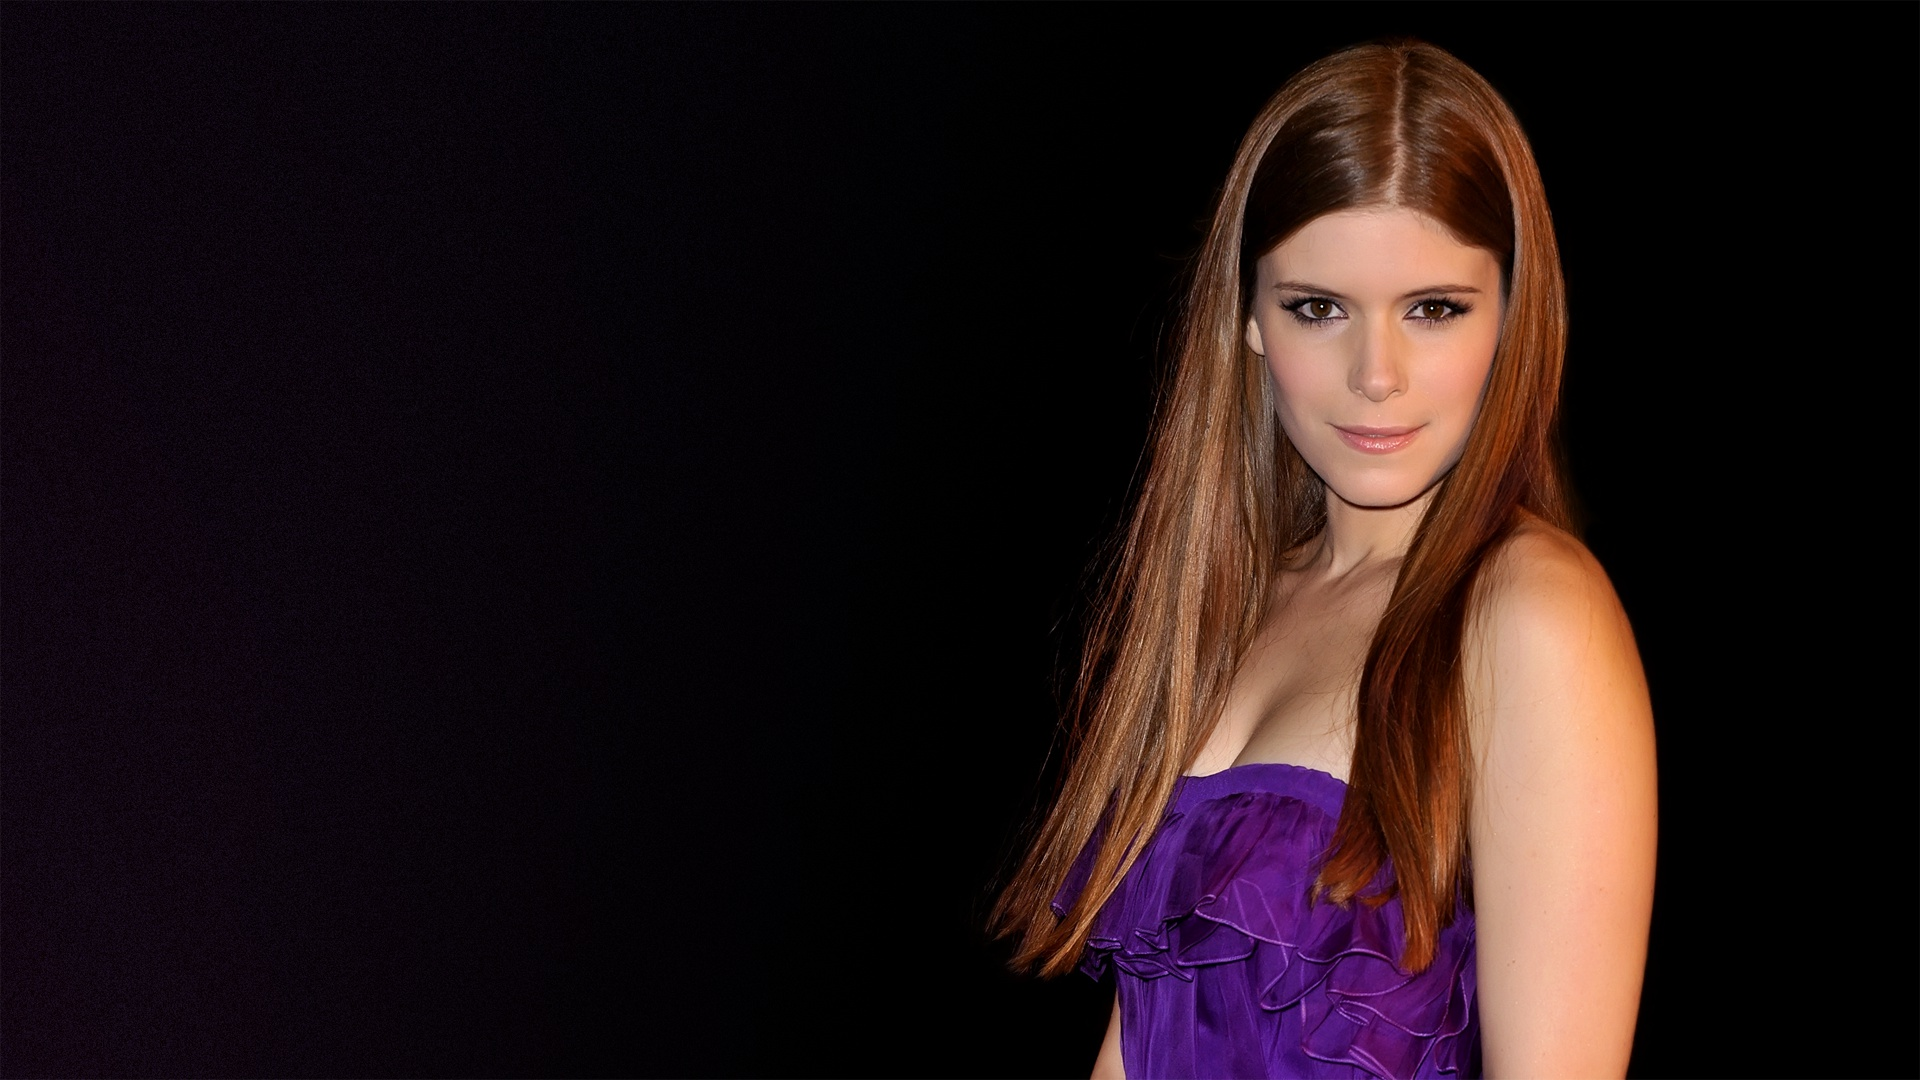 Mara: Kate Mara Wallpapers, Pictures, Images